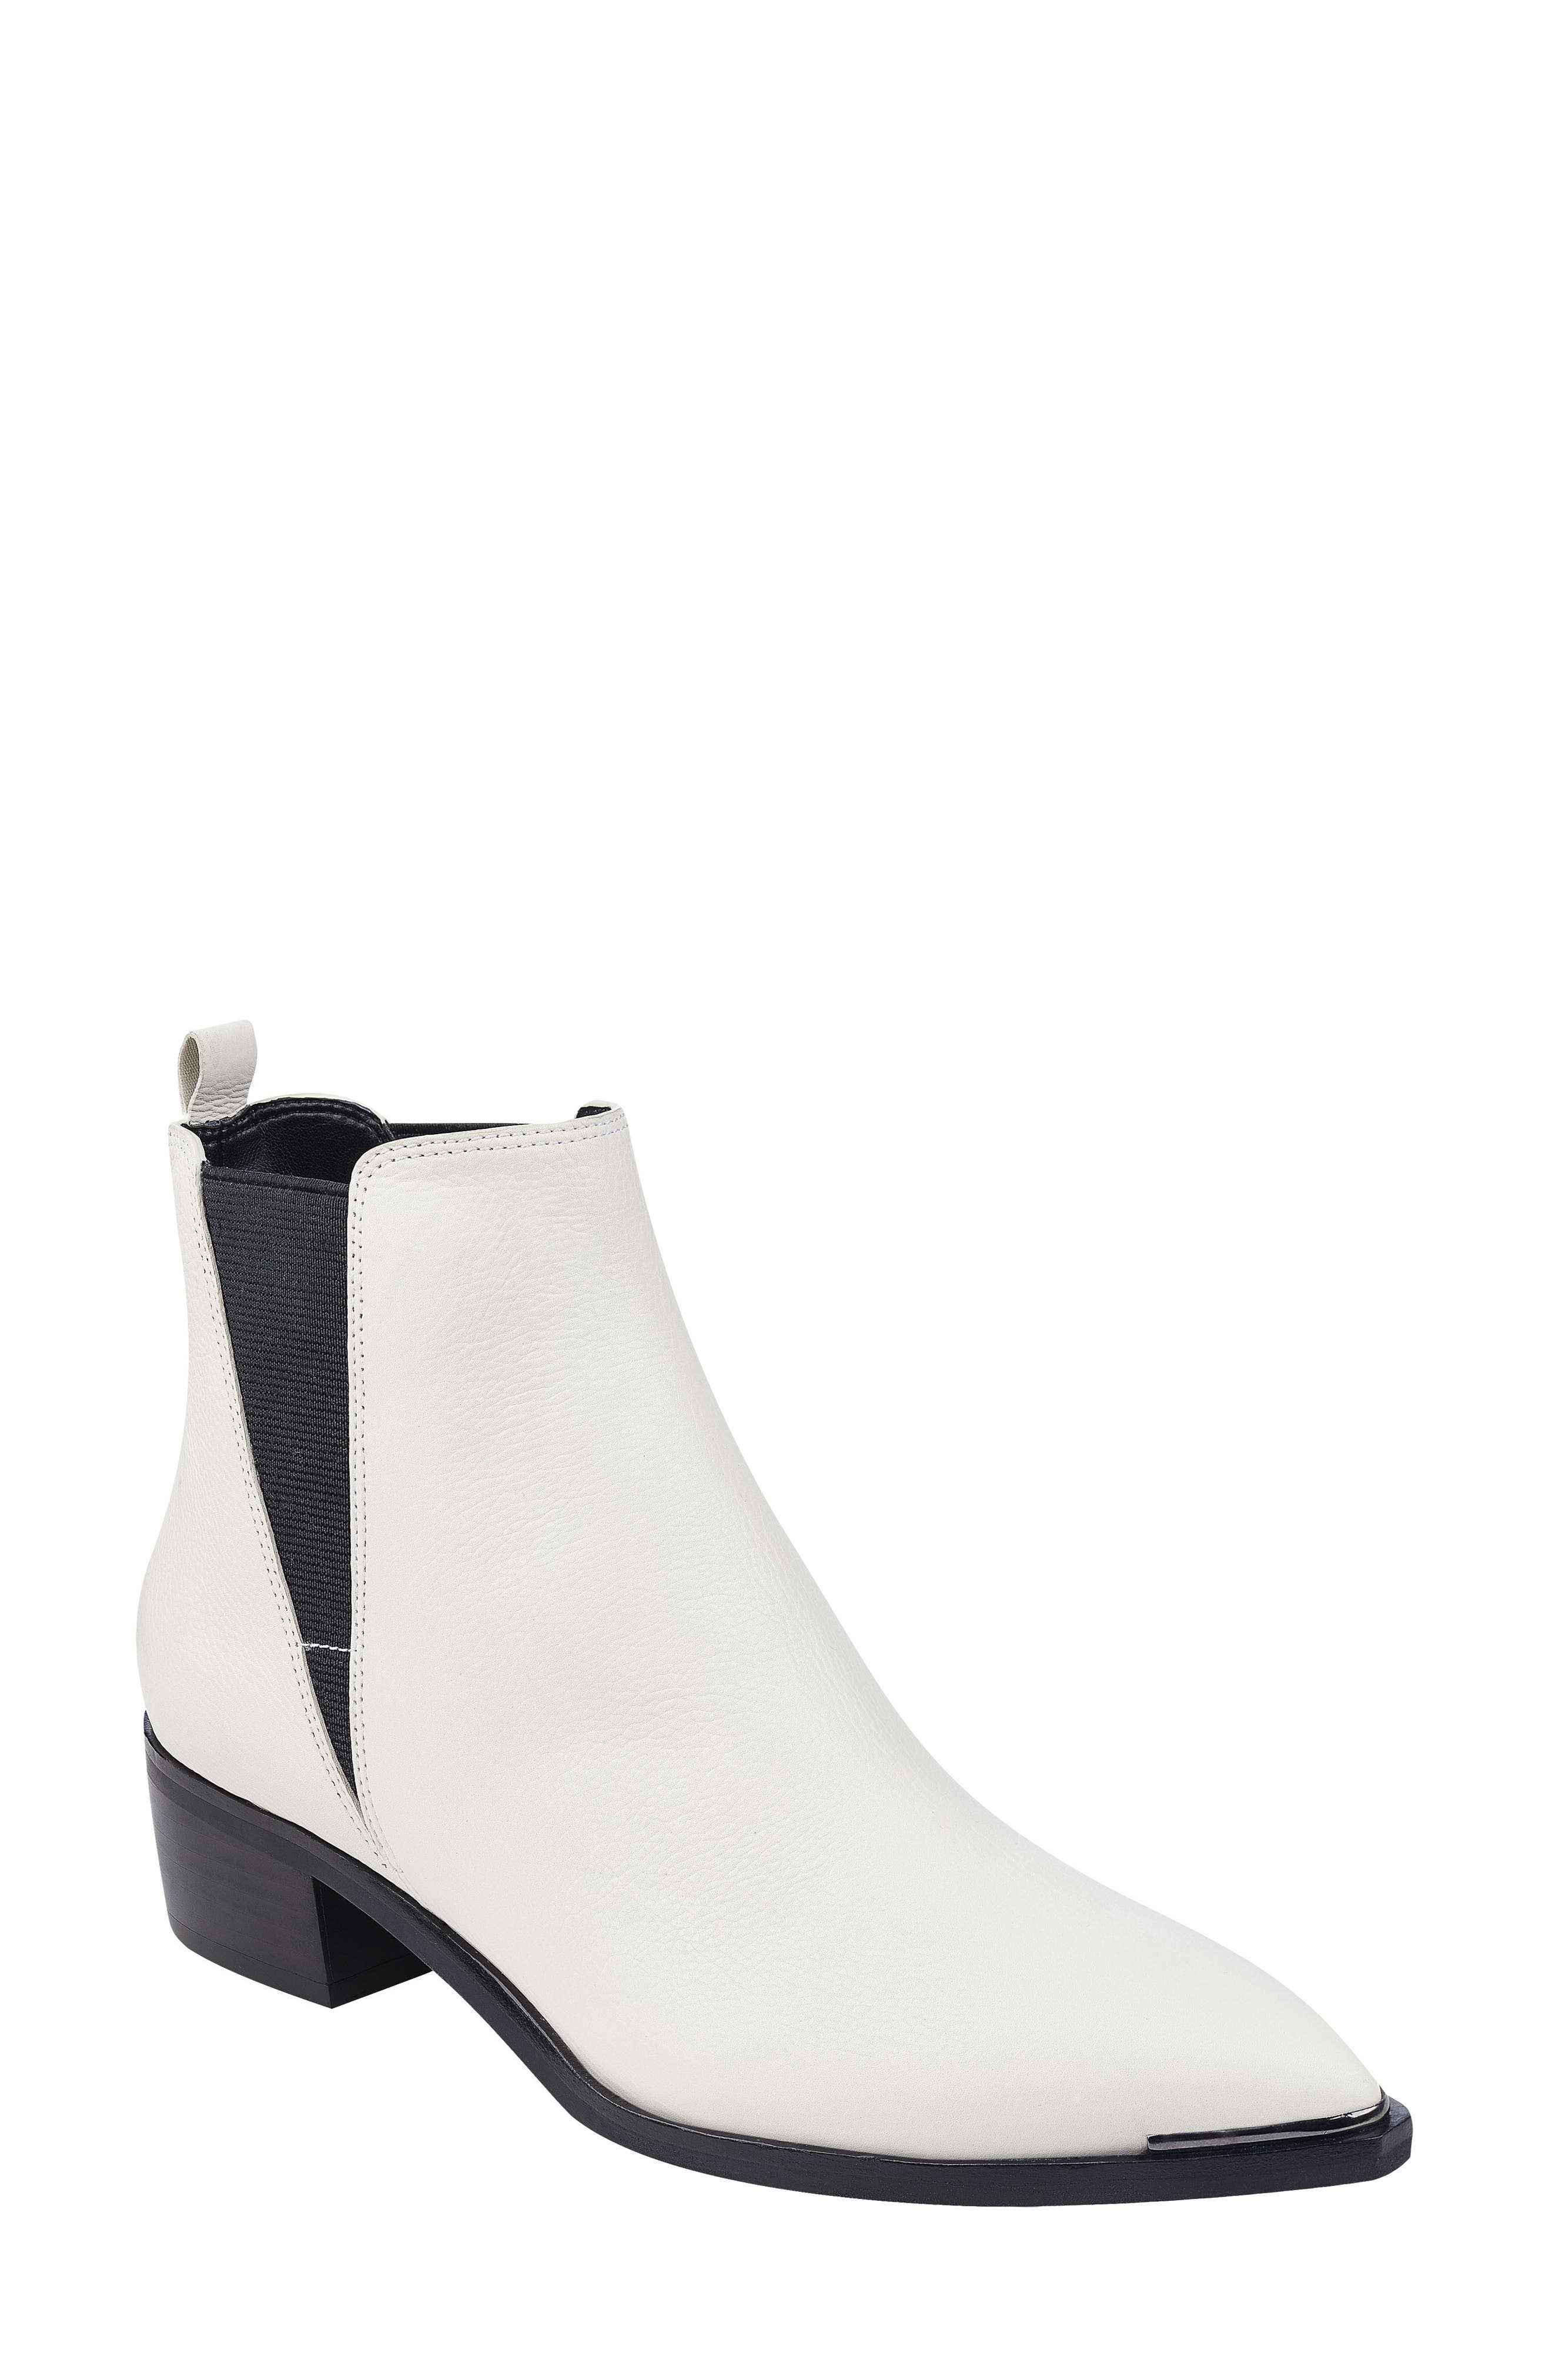 'Yale' Chelsea Boot,                             Main thumbnail 1, color,                             Ivory Leather